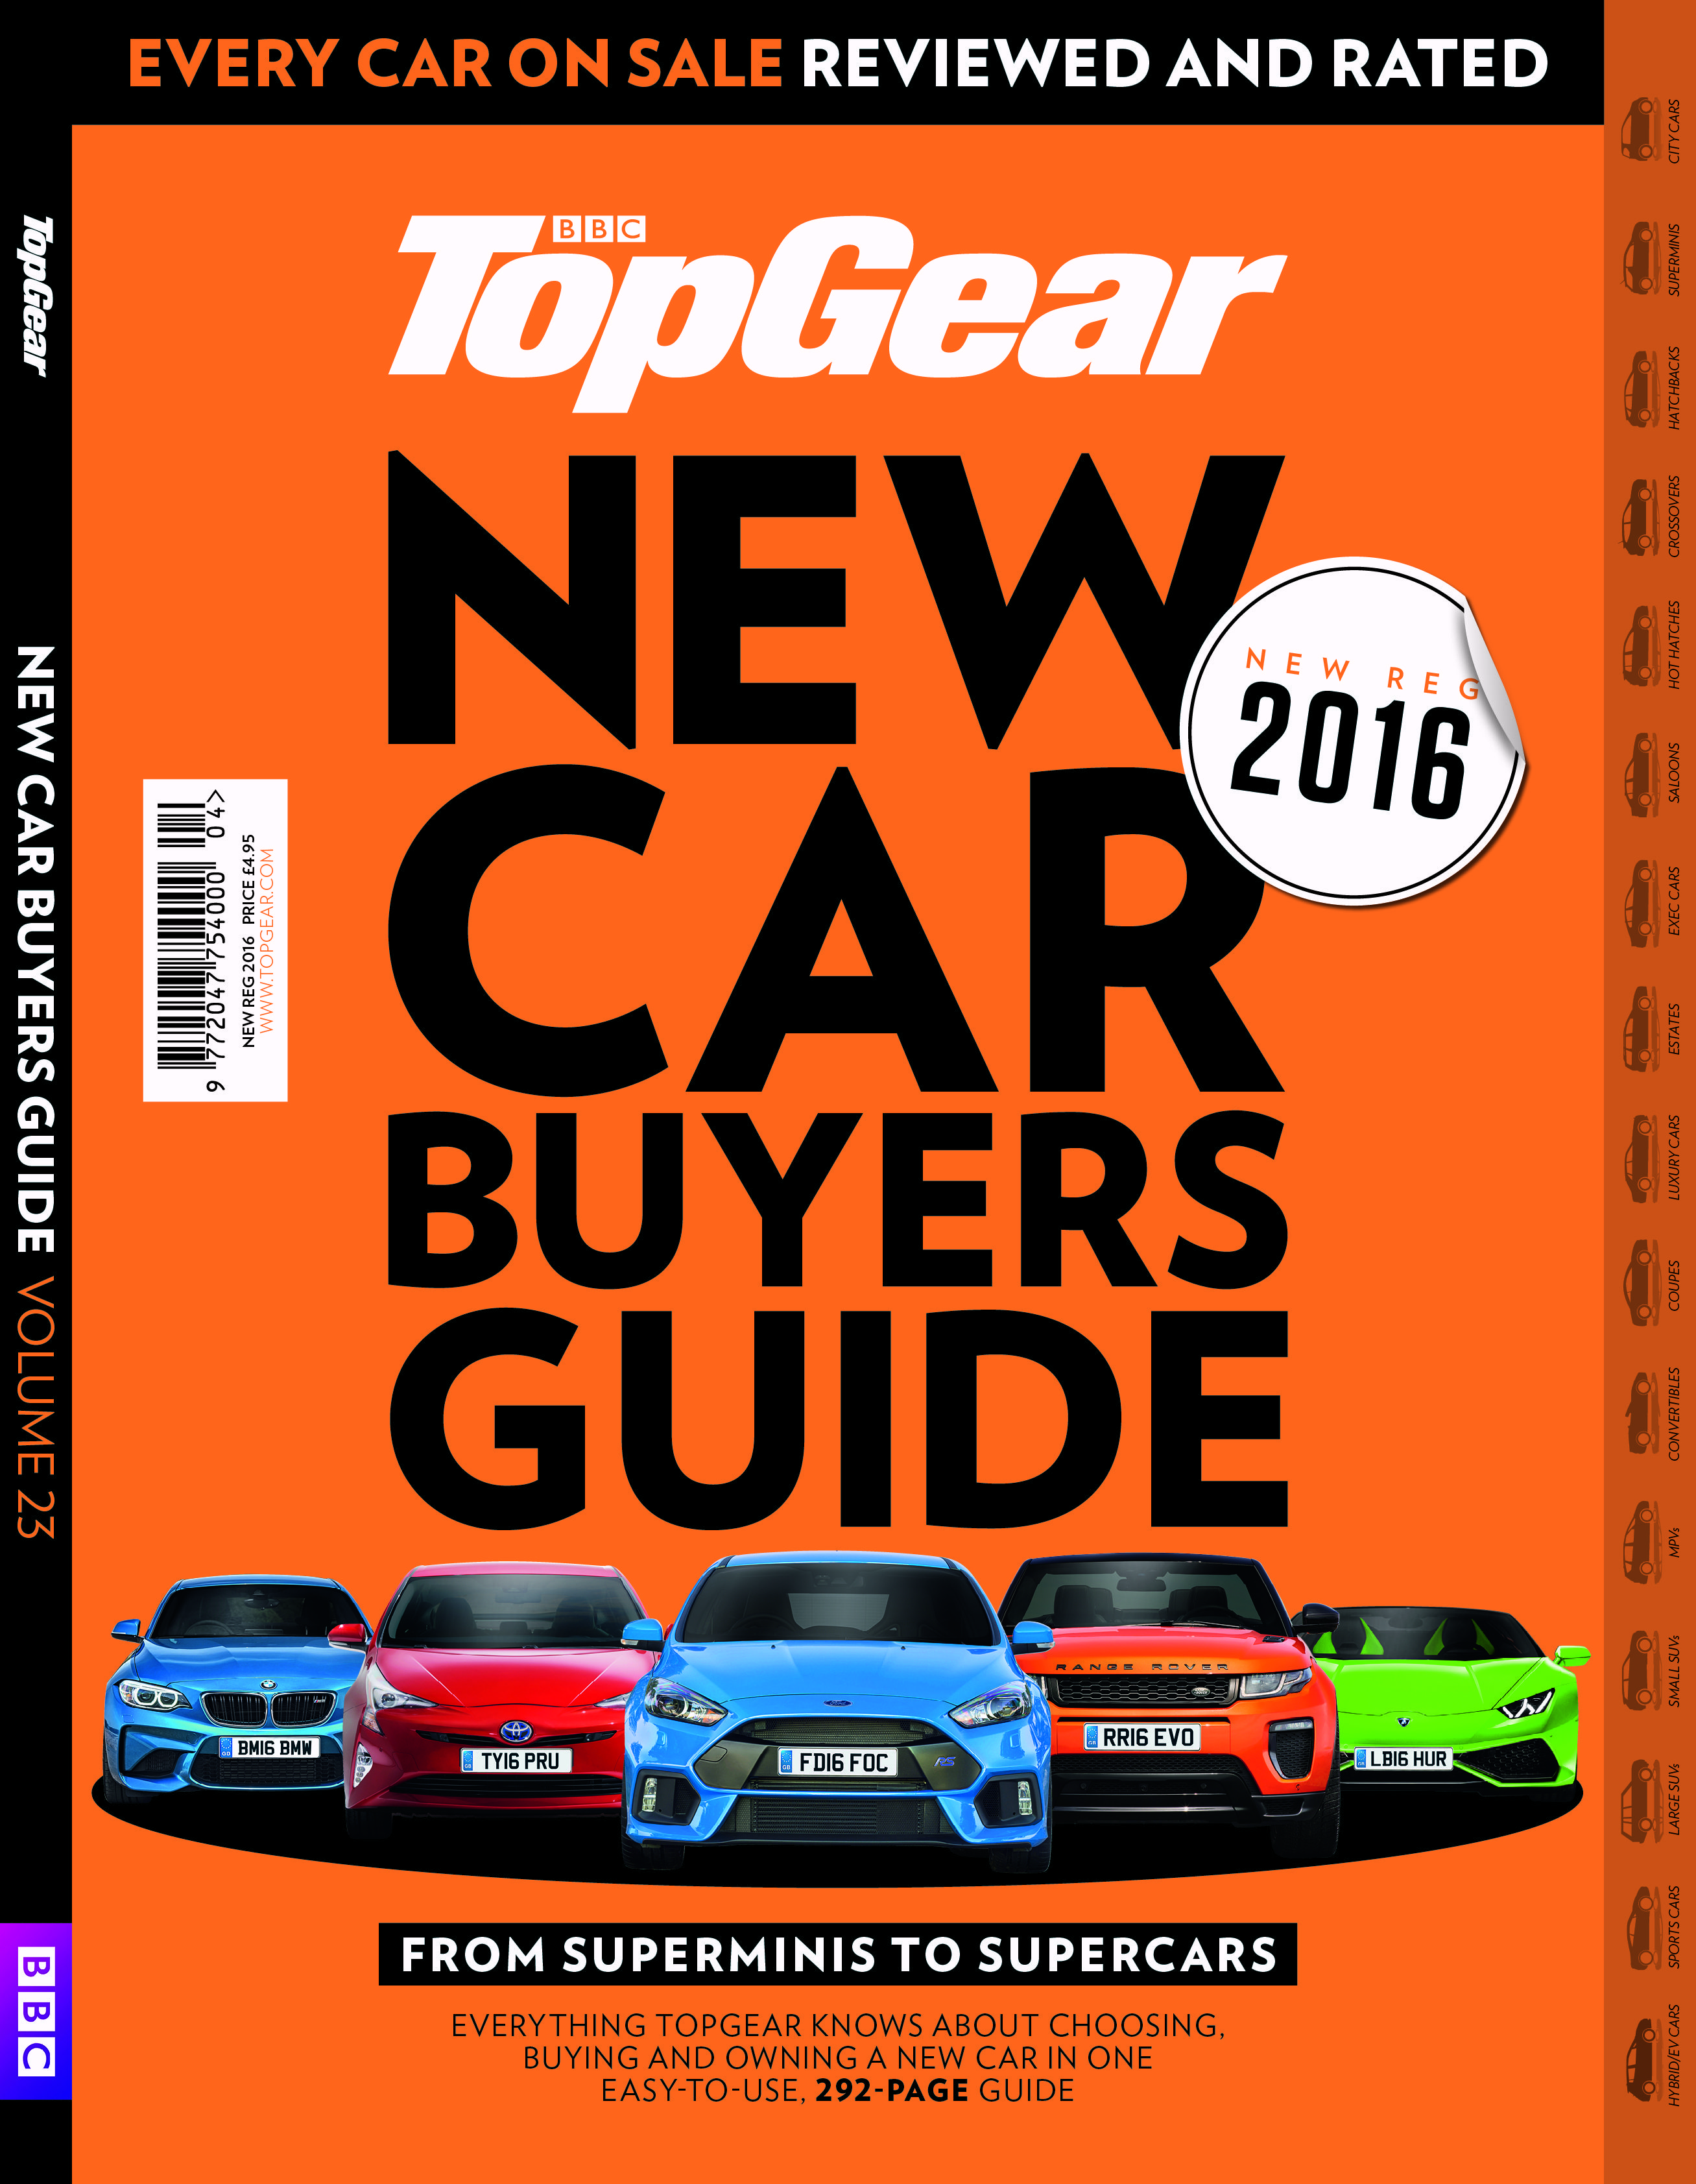 the top gear new car buyers guide every car on sale reviewed and rated 39 new reg 2016 39 edition. Black Bedroom Furniture Sets. Home Design Ideas